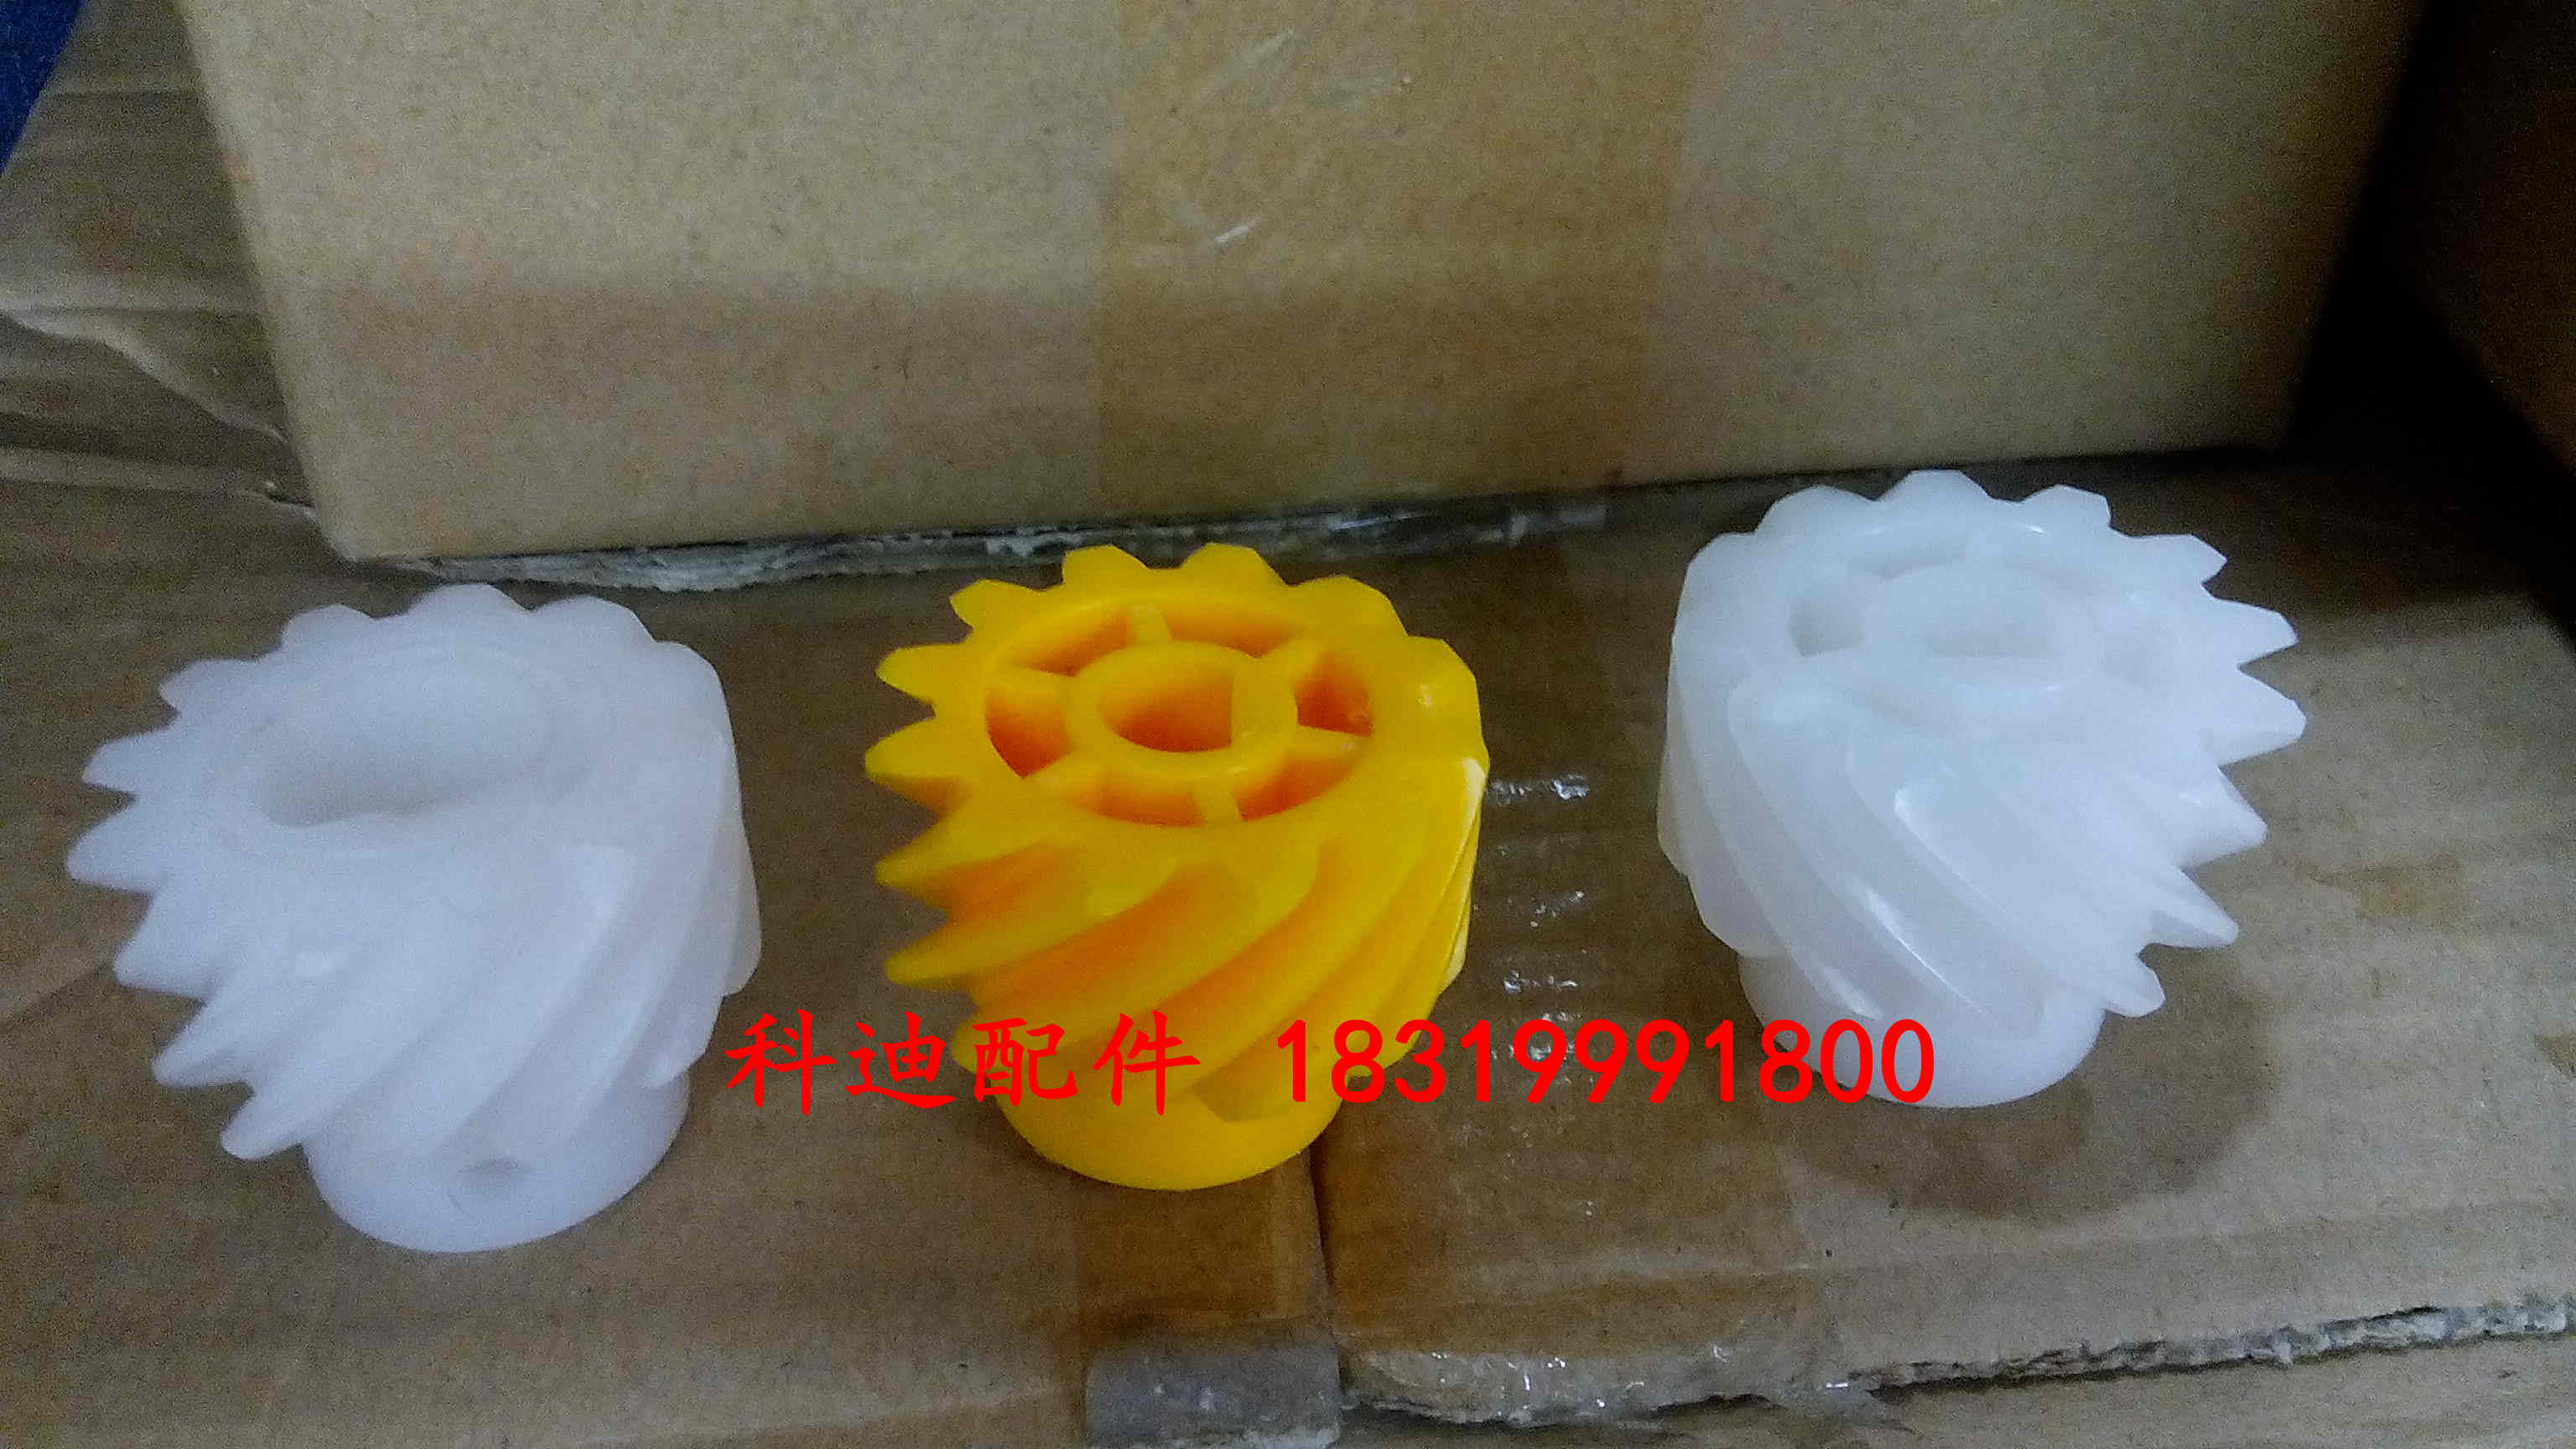 Positive horizontal transmission gear, 12 teeth PVDFPP wear-resistant material yellow helical helical gear